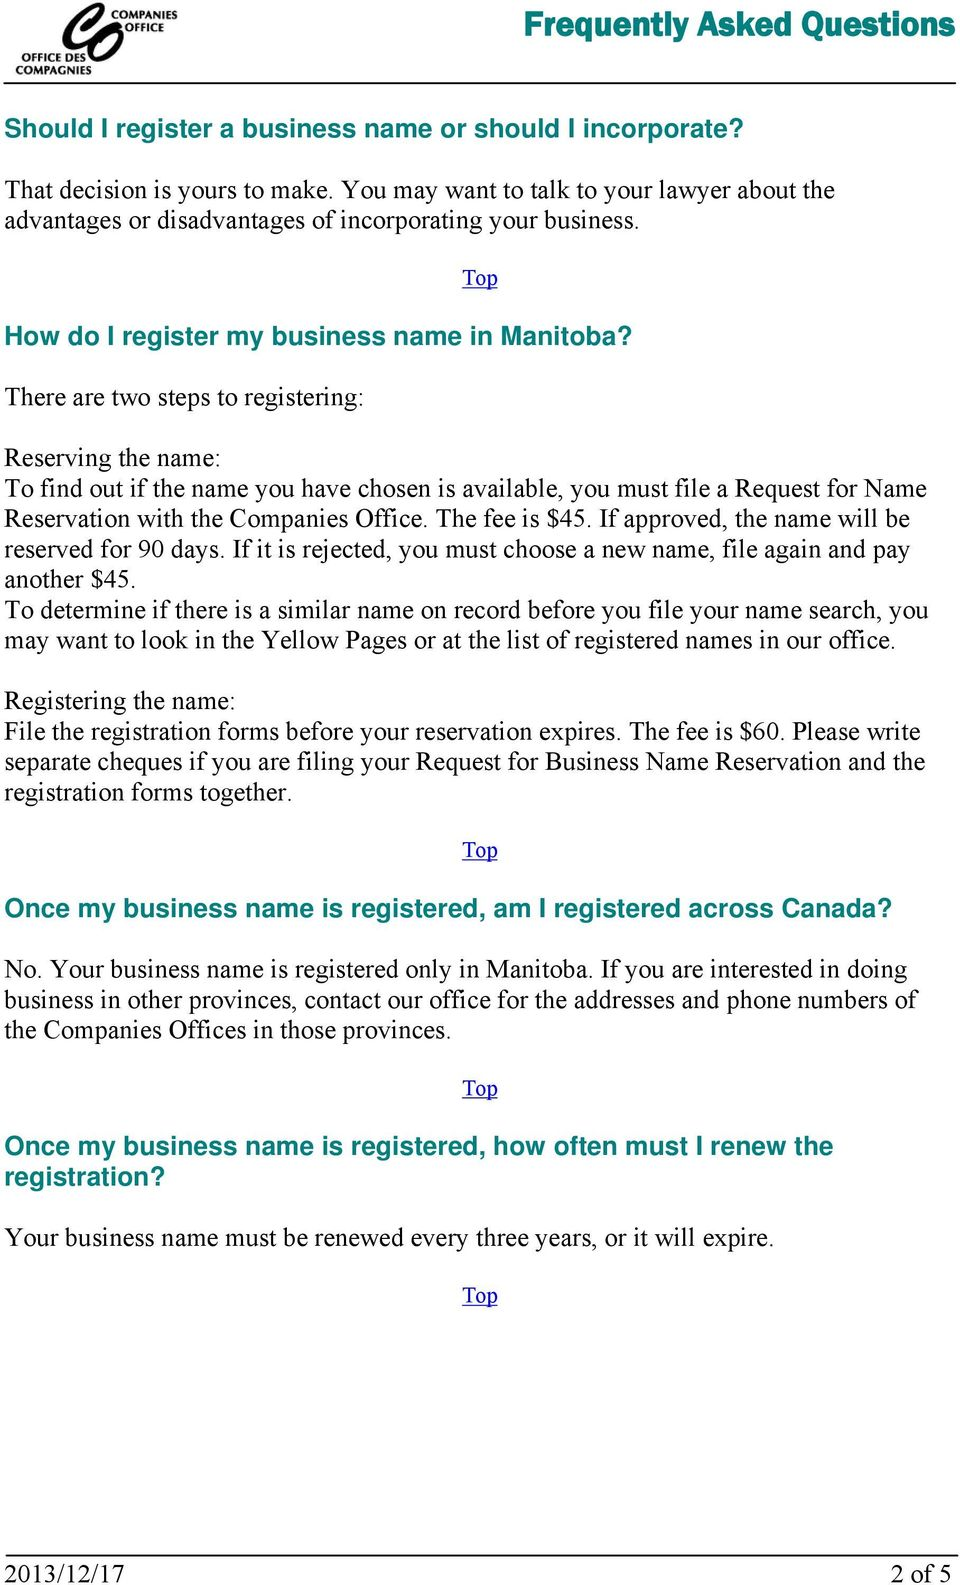 There are two steps to registering: Reserving the name: To find out if the name you have chosen is available, you must file a Request for Name Reservation with the Companies Office. The fee is $45.